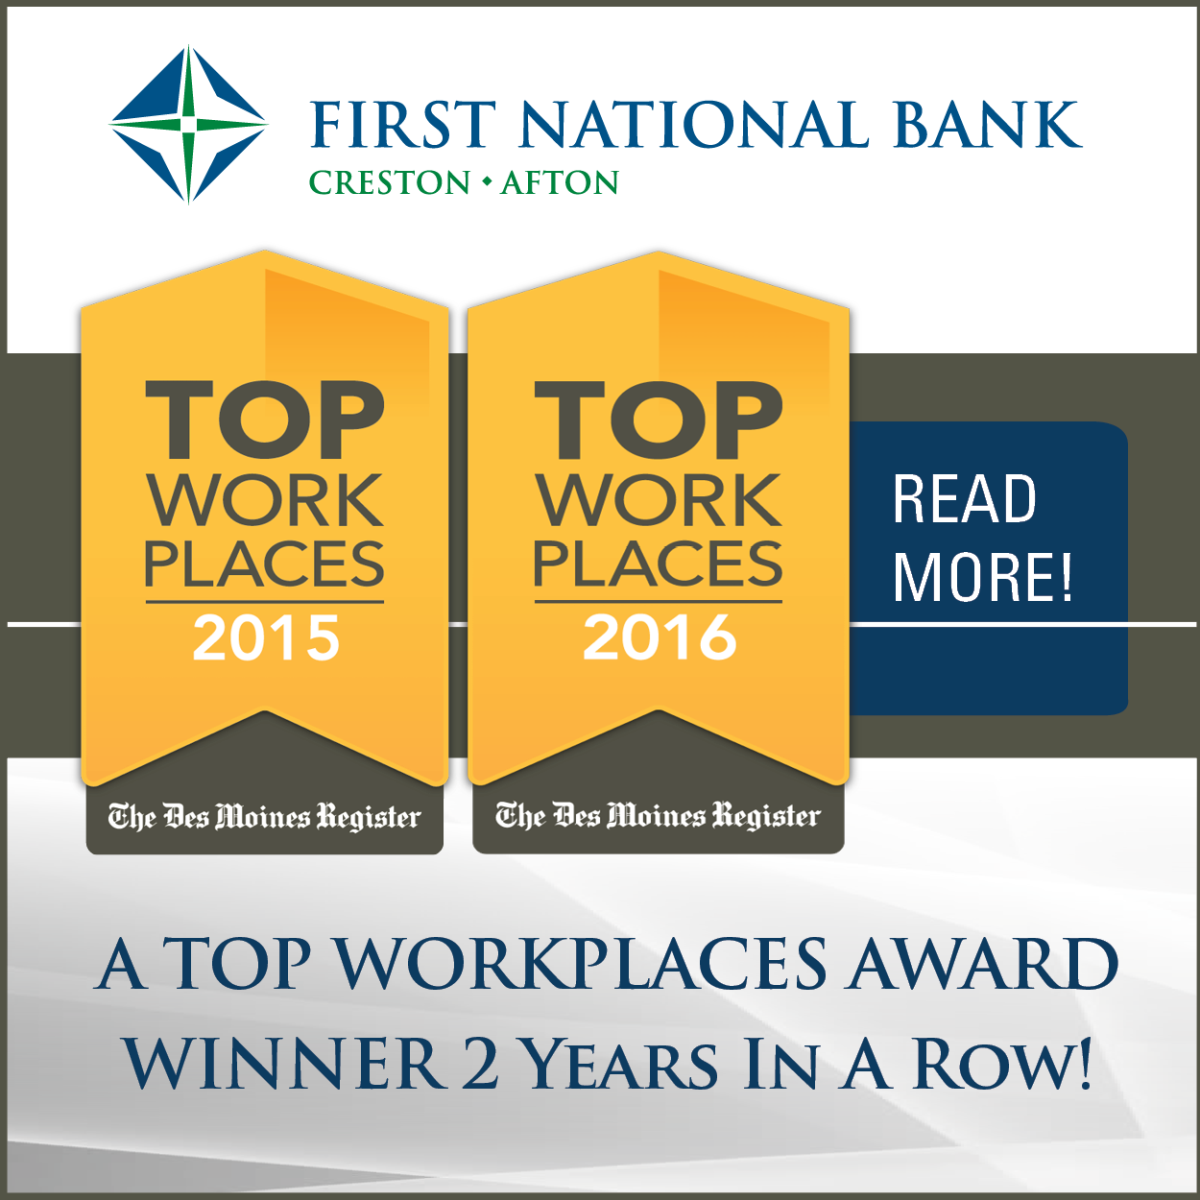 Top workplace by the Des Moines Register